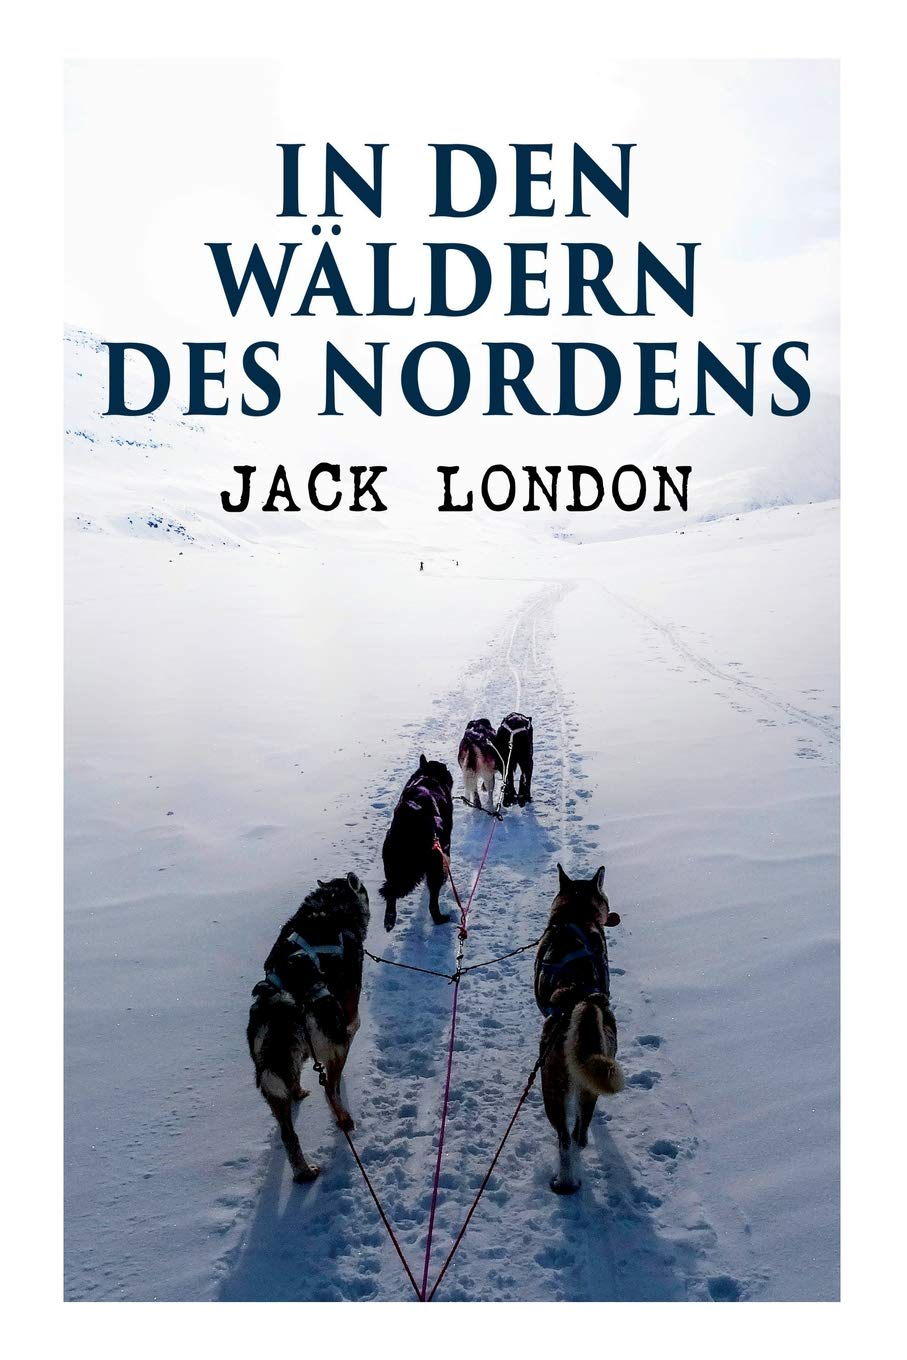 In den Wäldern des Nordens Taschenbuch – 29. April 2018 Jack London e-artnow 8026890221 FICTION / Classics